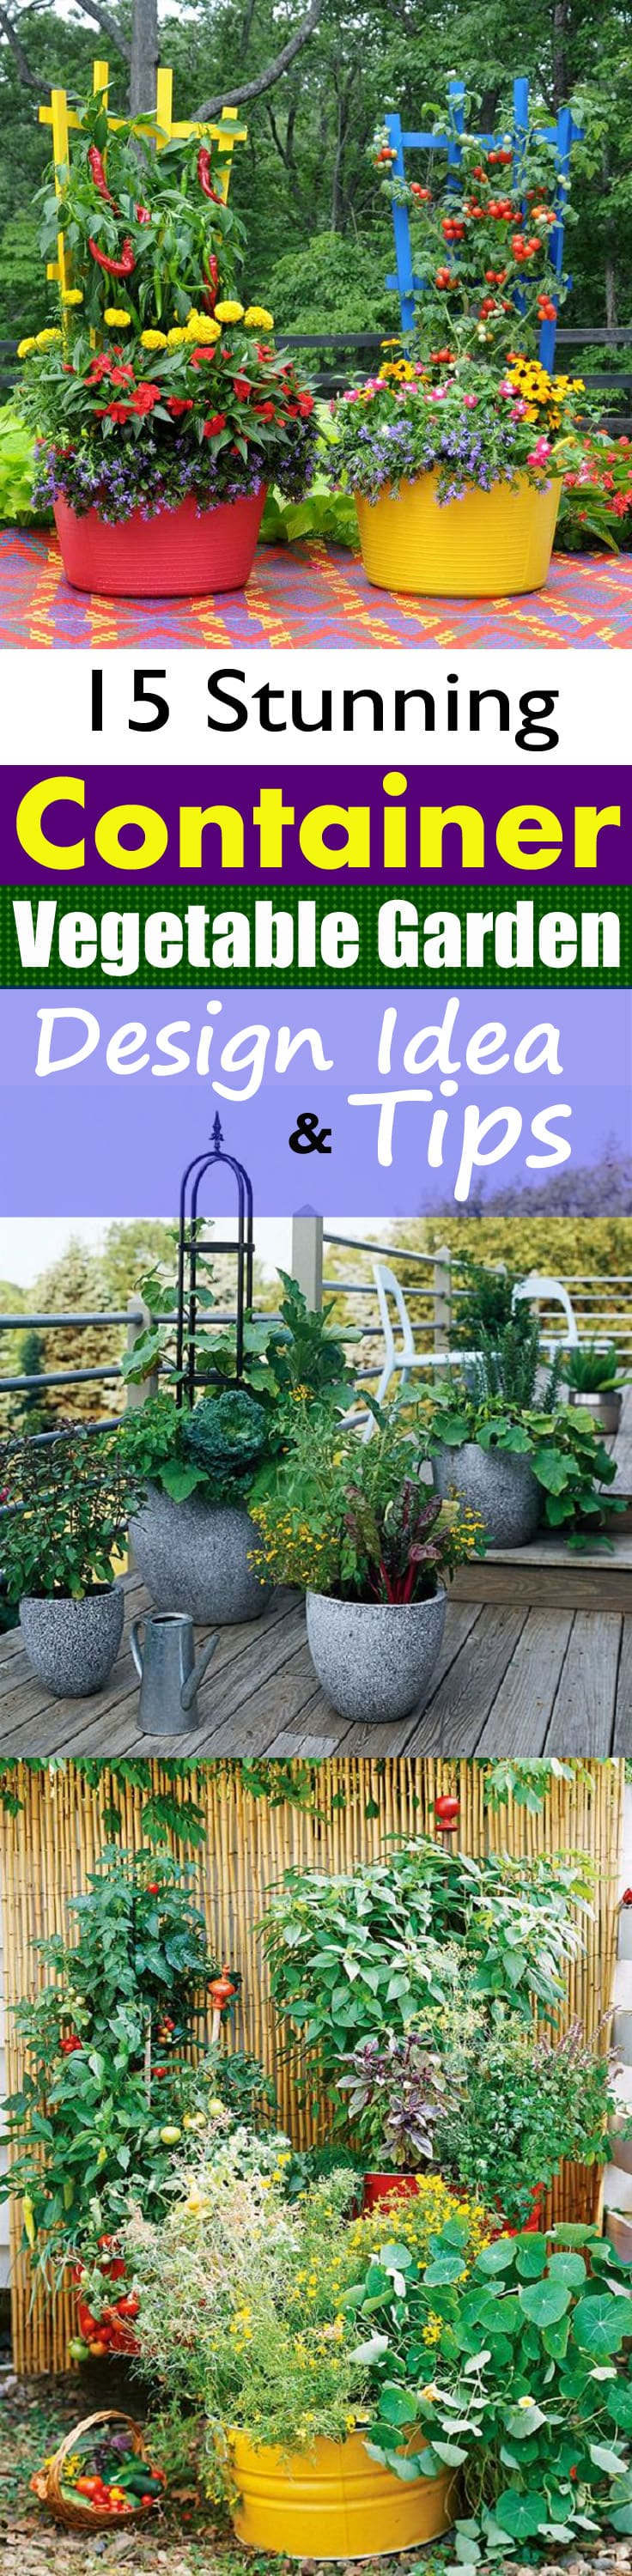 15 stunning container ve able garden design ideas tips